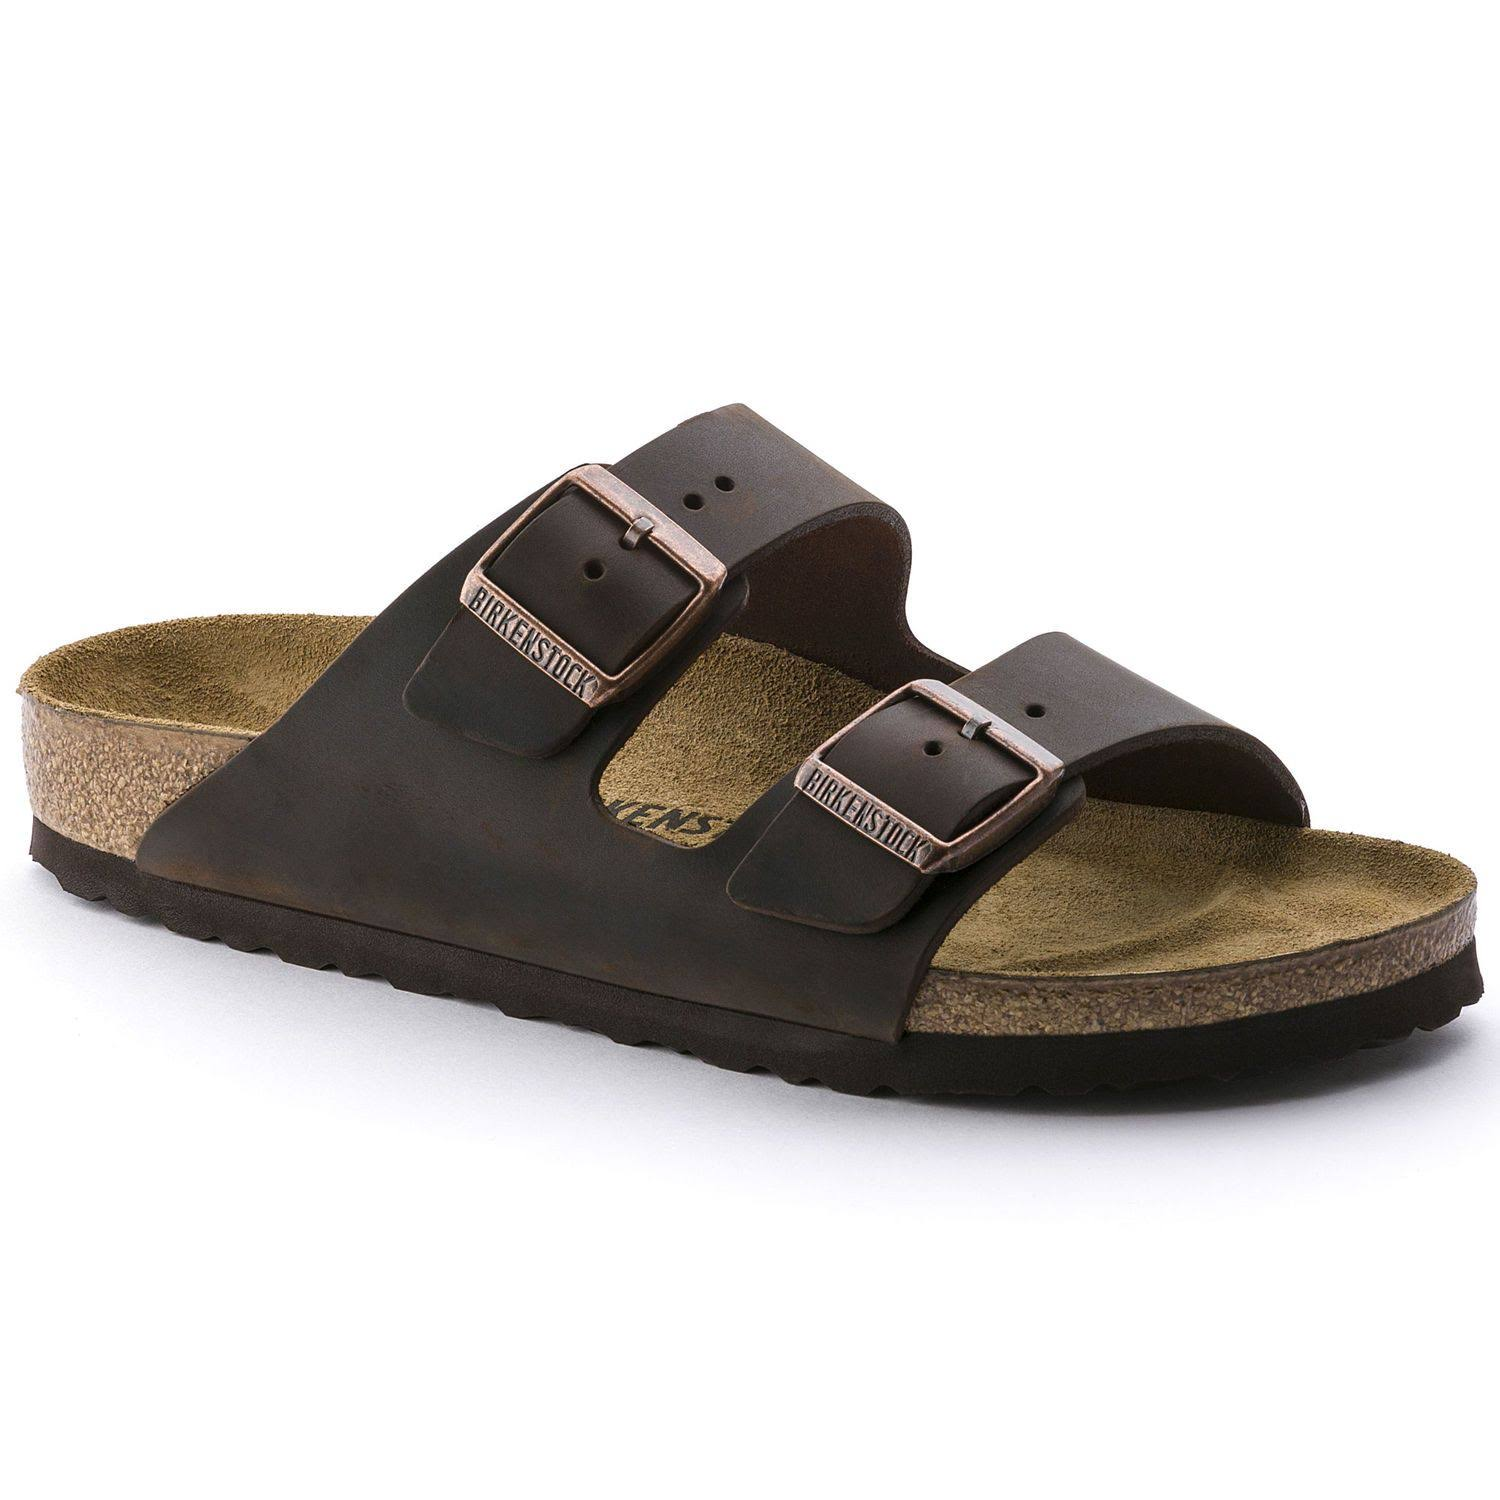 Birkenstock Unisex Arizona Sandal - Leather, EU39